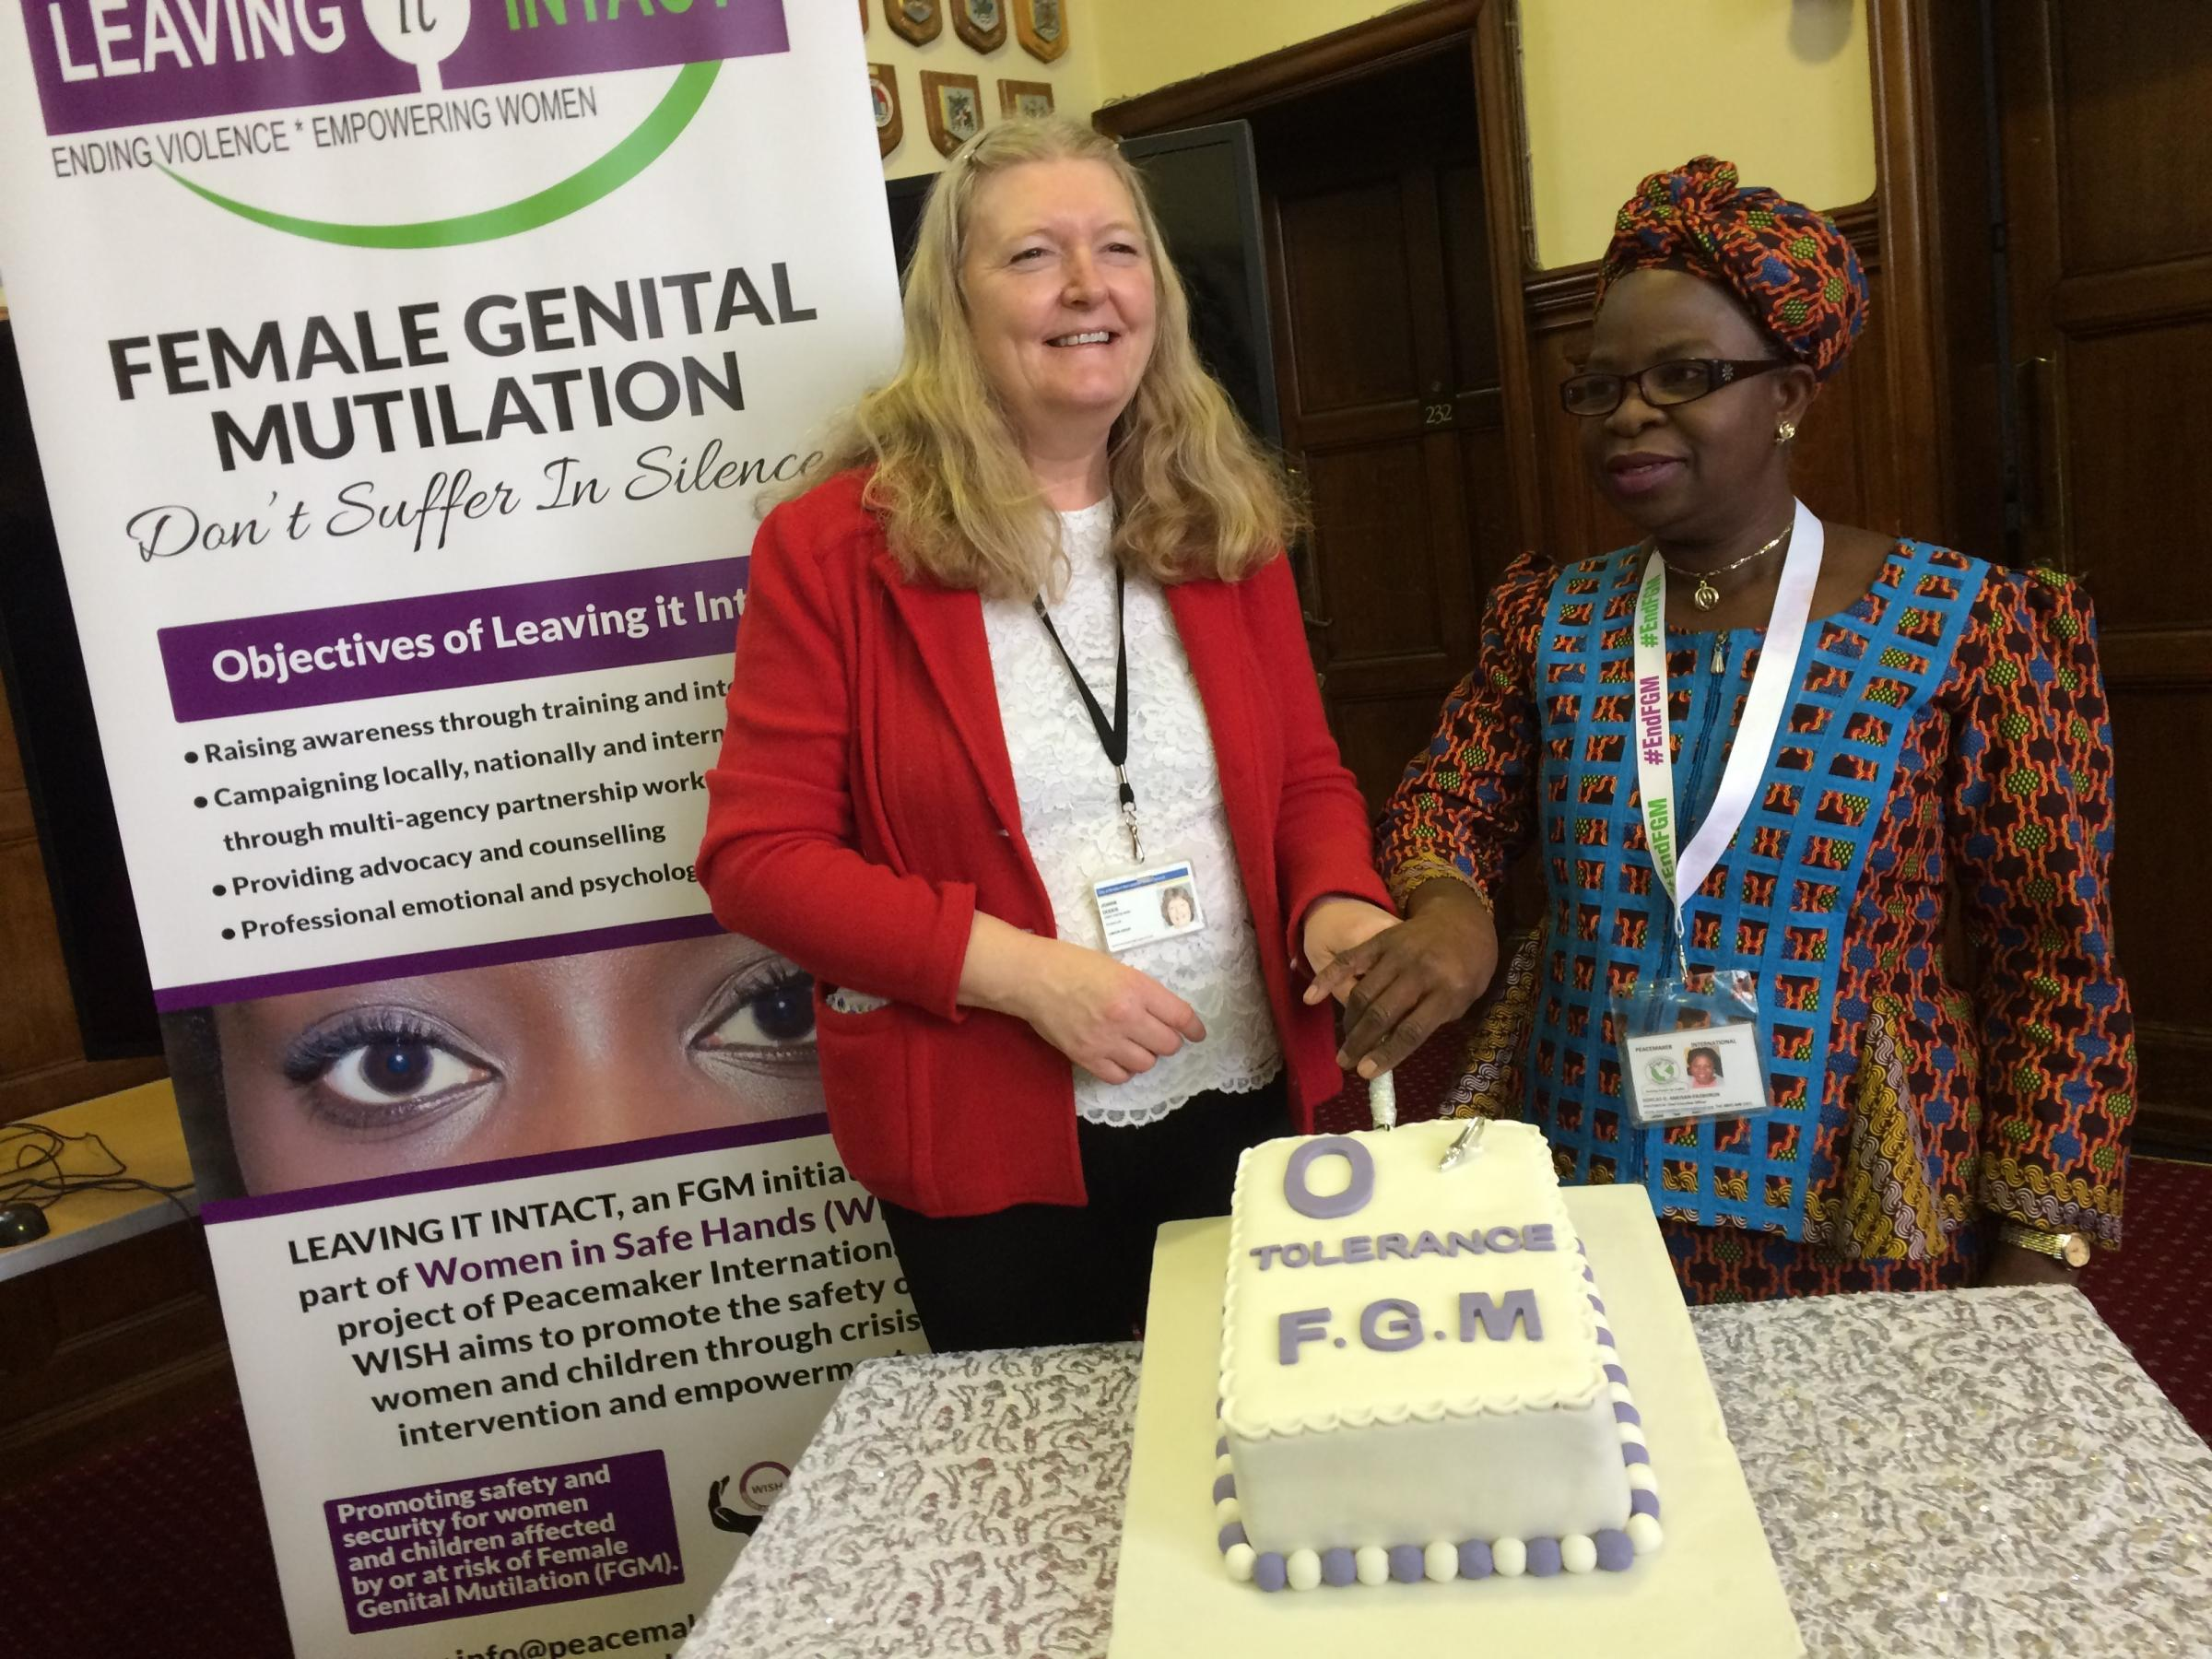 Cllr Joanne Dodds and Yemi Fagborun, of Peacemaker International, cut the 'zero tolerance to FGM' cake